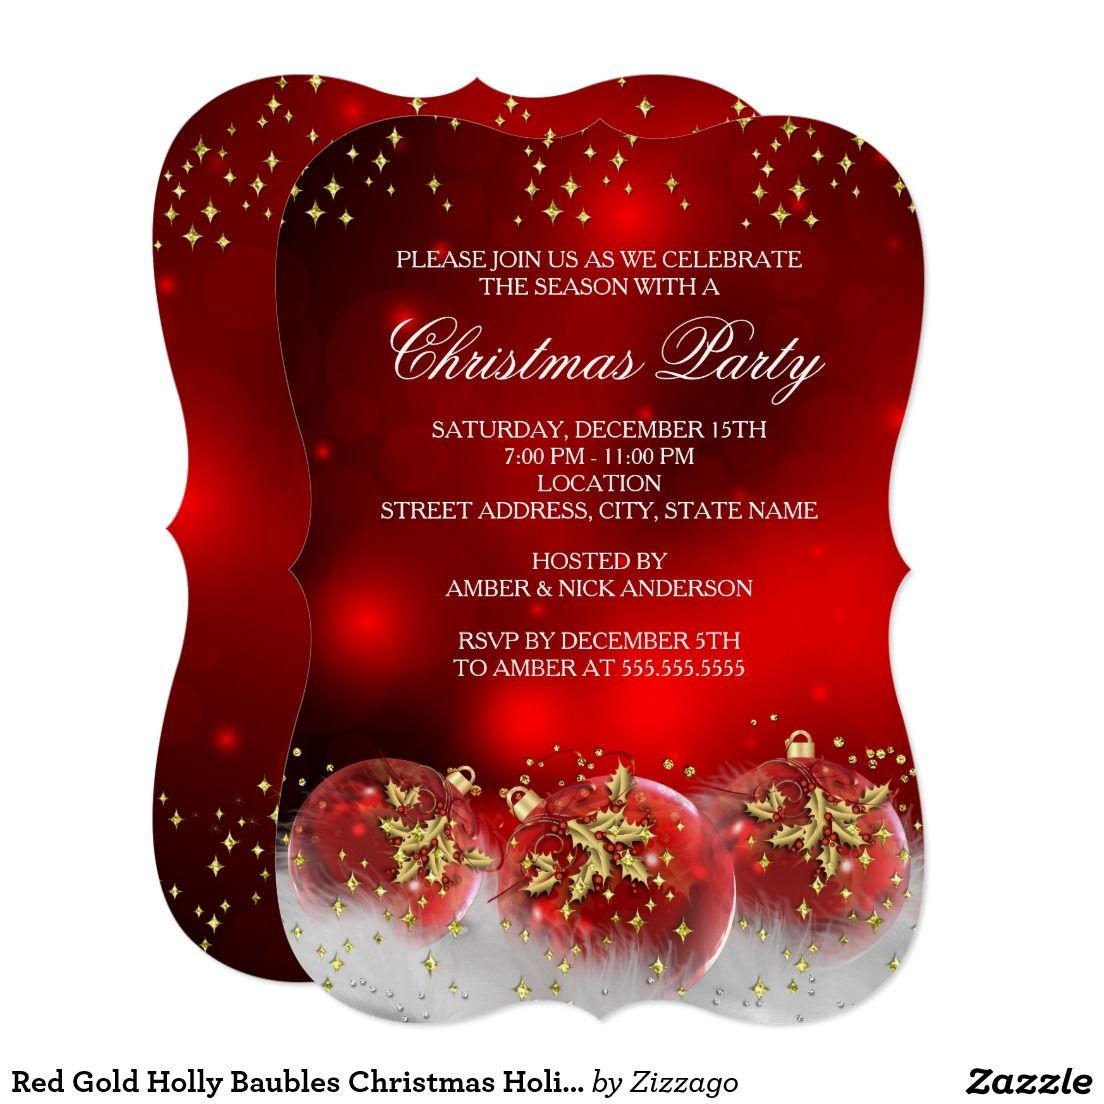 Red Gold Holly Baubles Christmas Holiday Party Card | Christmas ...